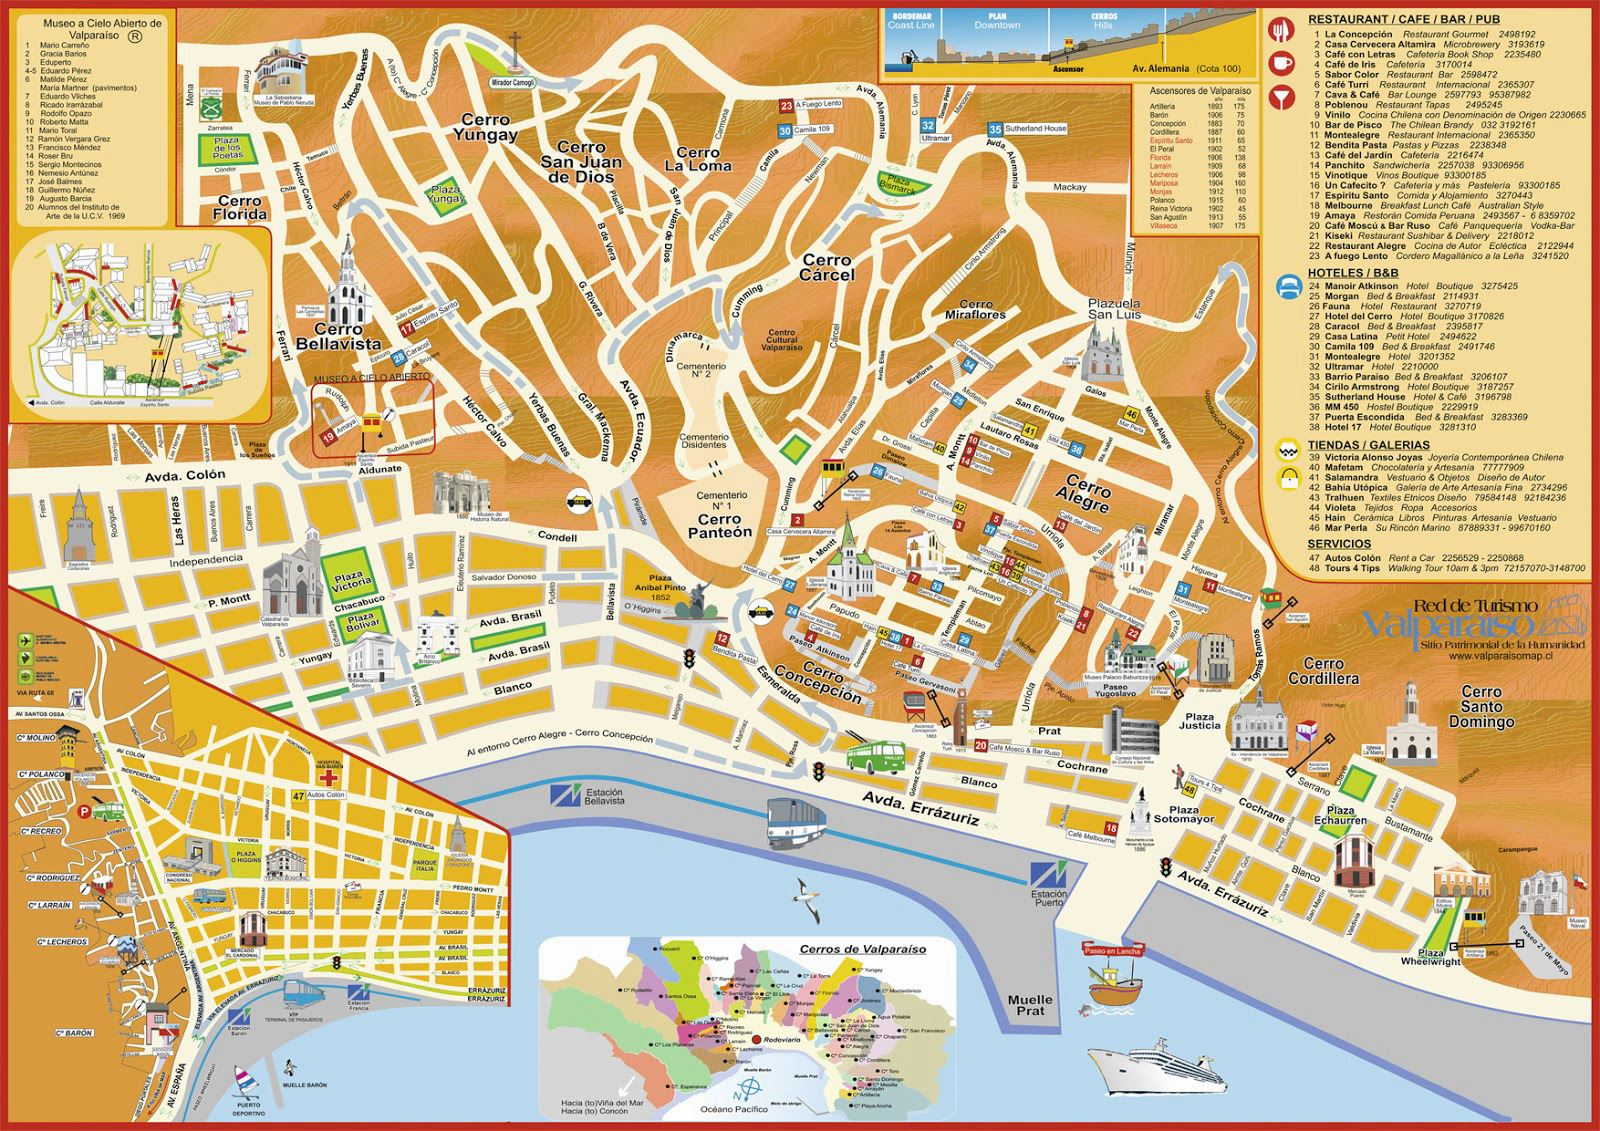 Valparaiso Florida Map.Large Valparaiso Maps For Free Download And Print High Resolution